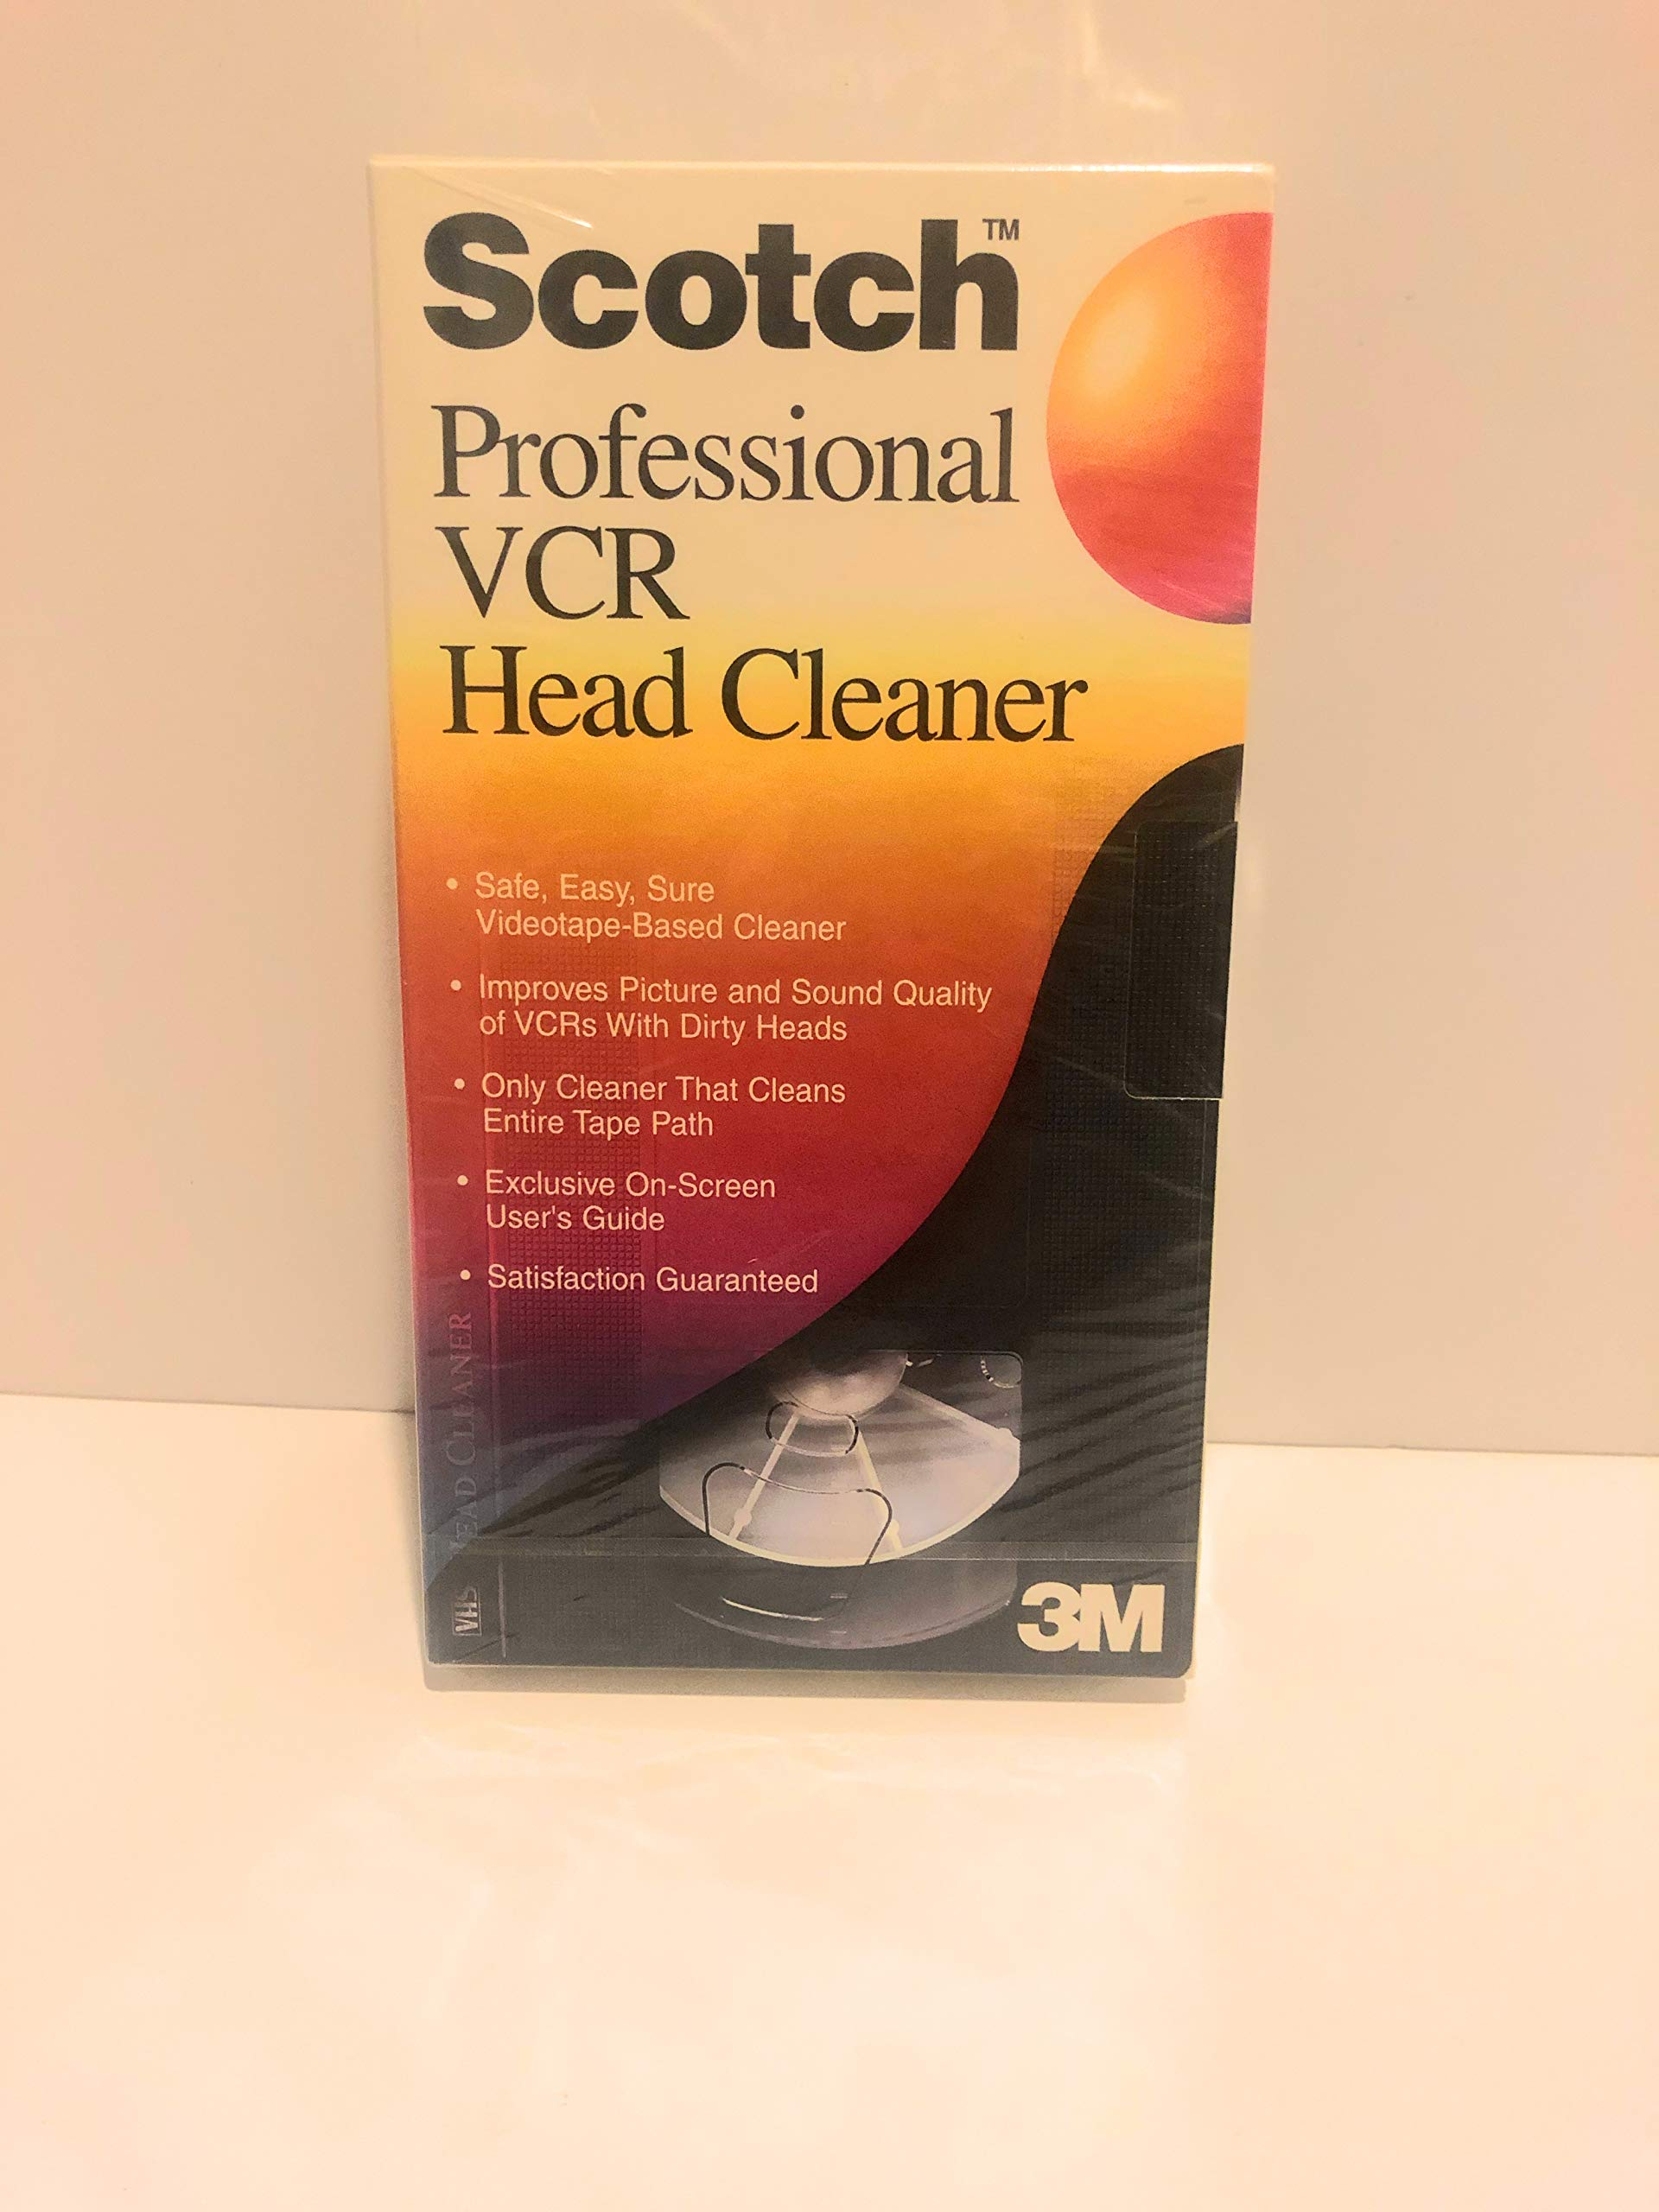 Scotch VCR Head Cleaner Plus by Scotch